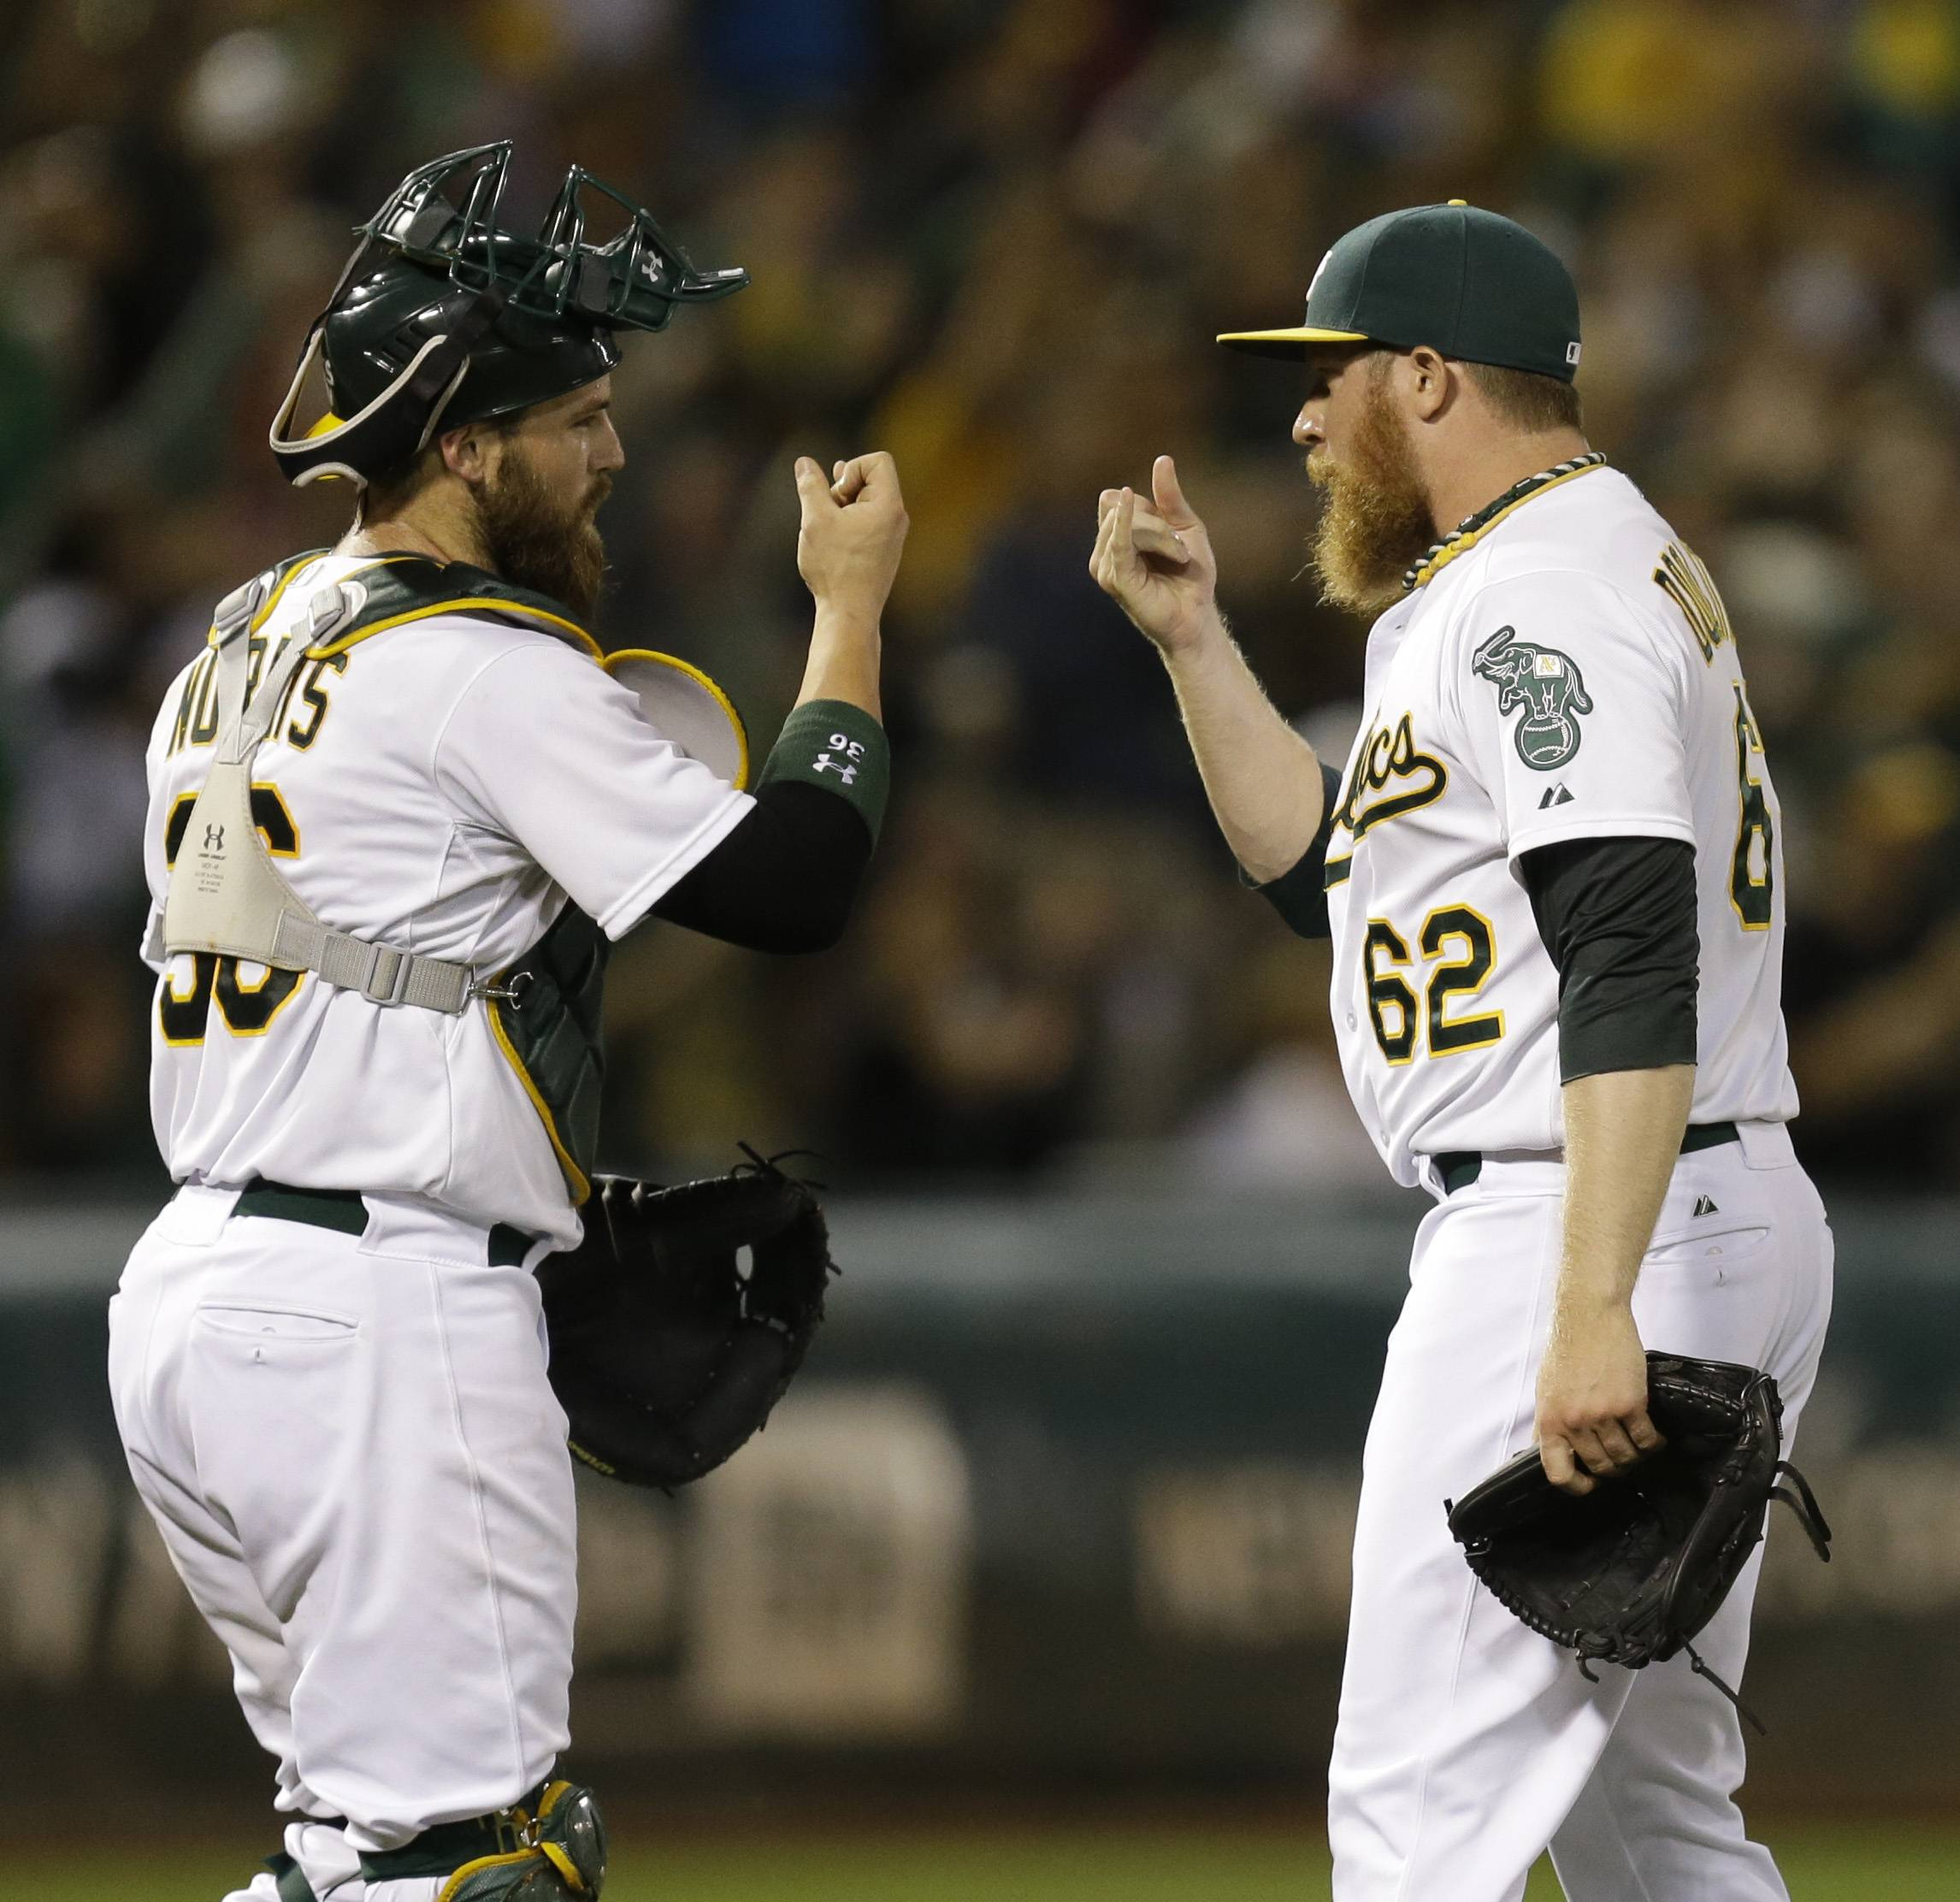 Oakland Athletics' Sean Doolittle (62) and Derek Norris, left, celebrate the A's 3-1 defeat of the Philadelphia Phillies in a baseball game Friday, Sept. 19, 2014, in Oakland, Calif.